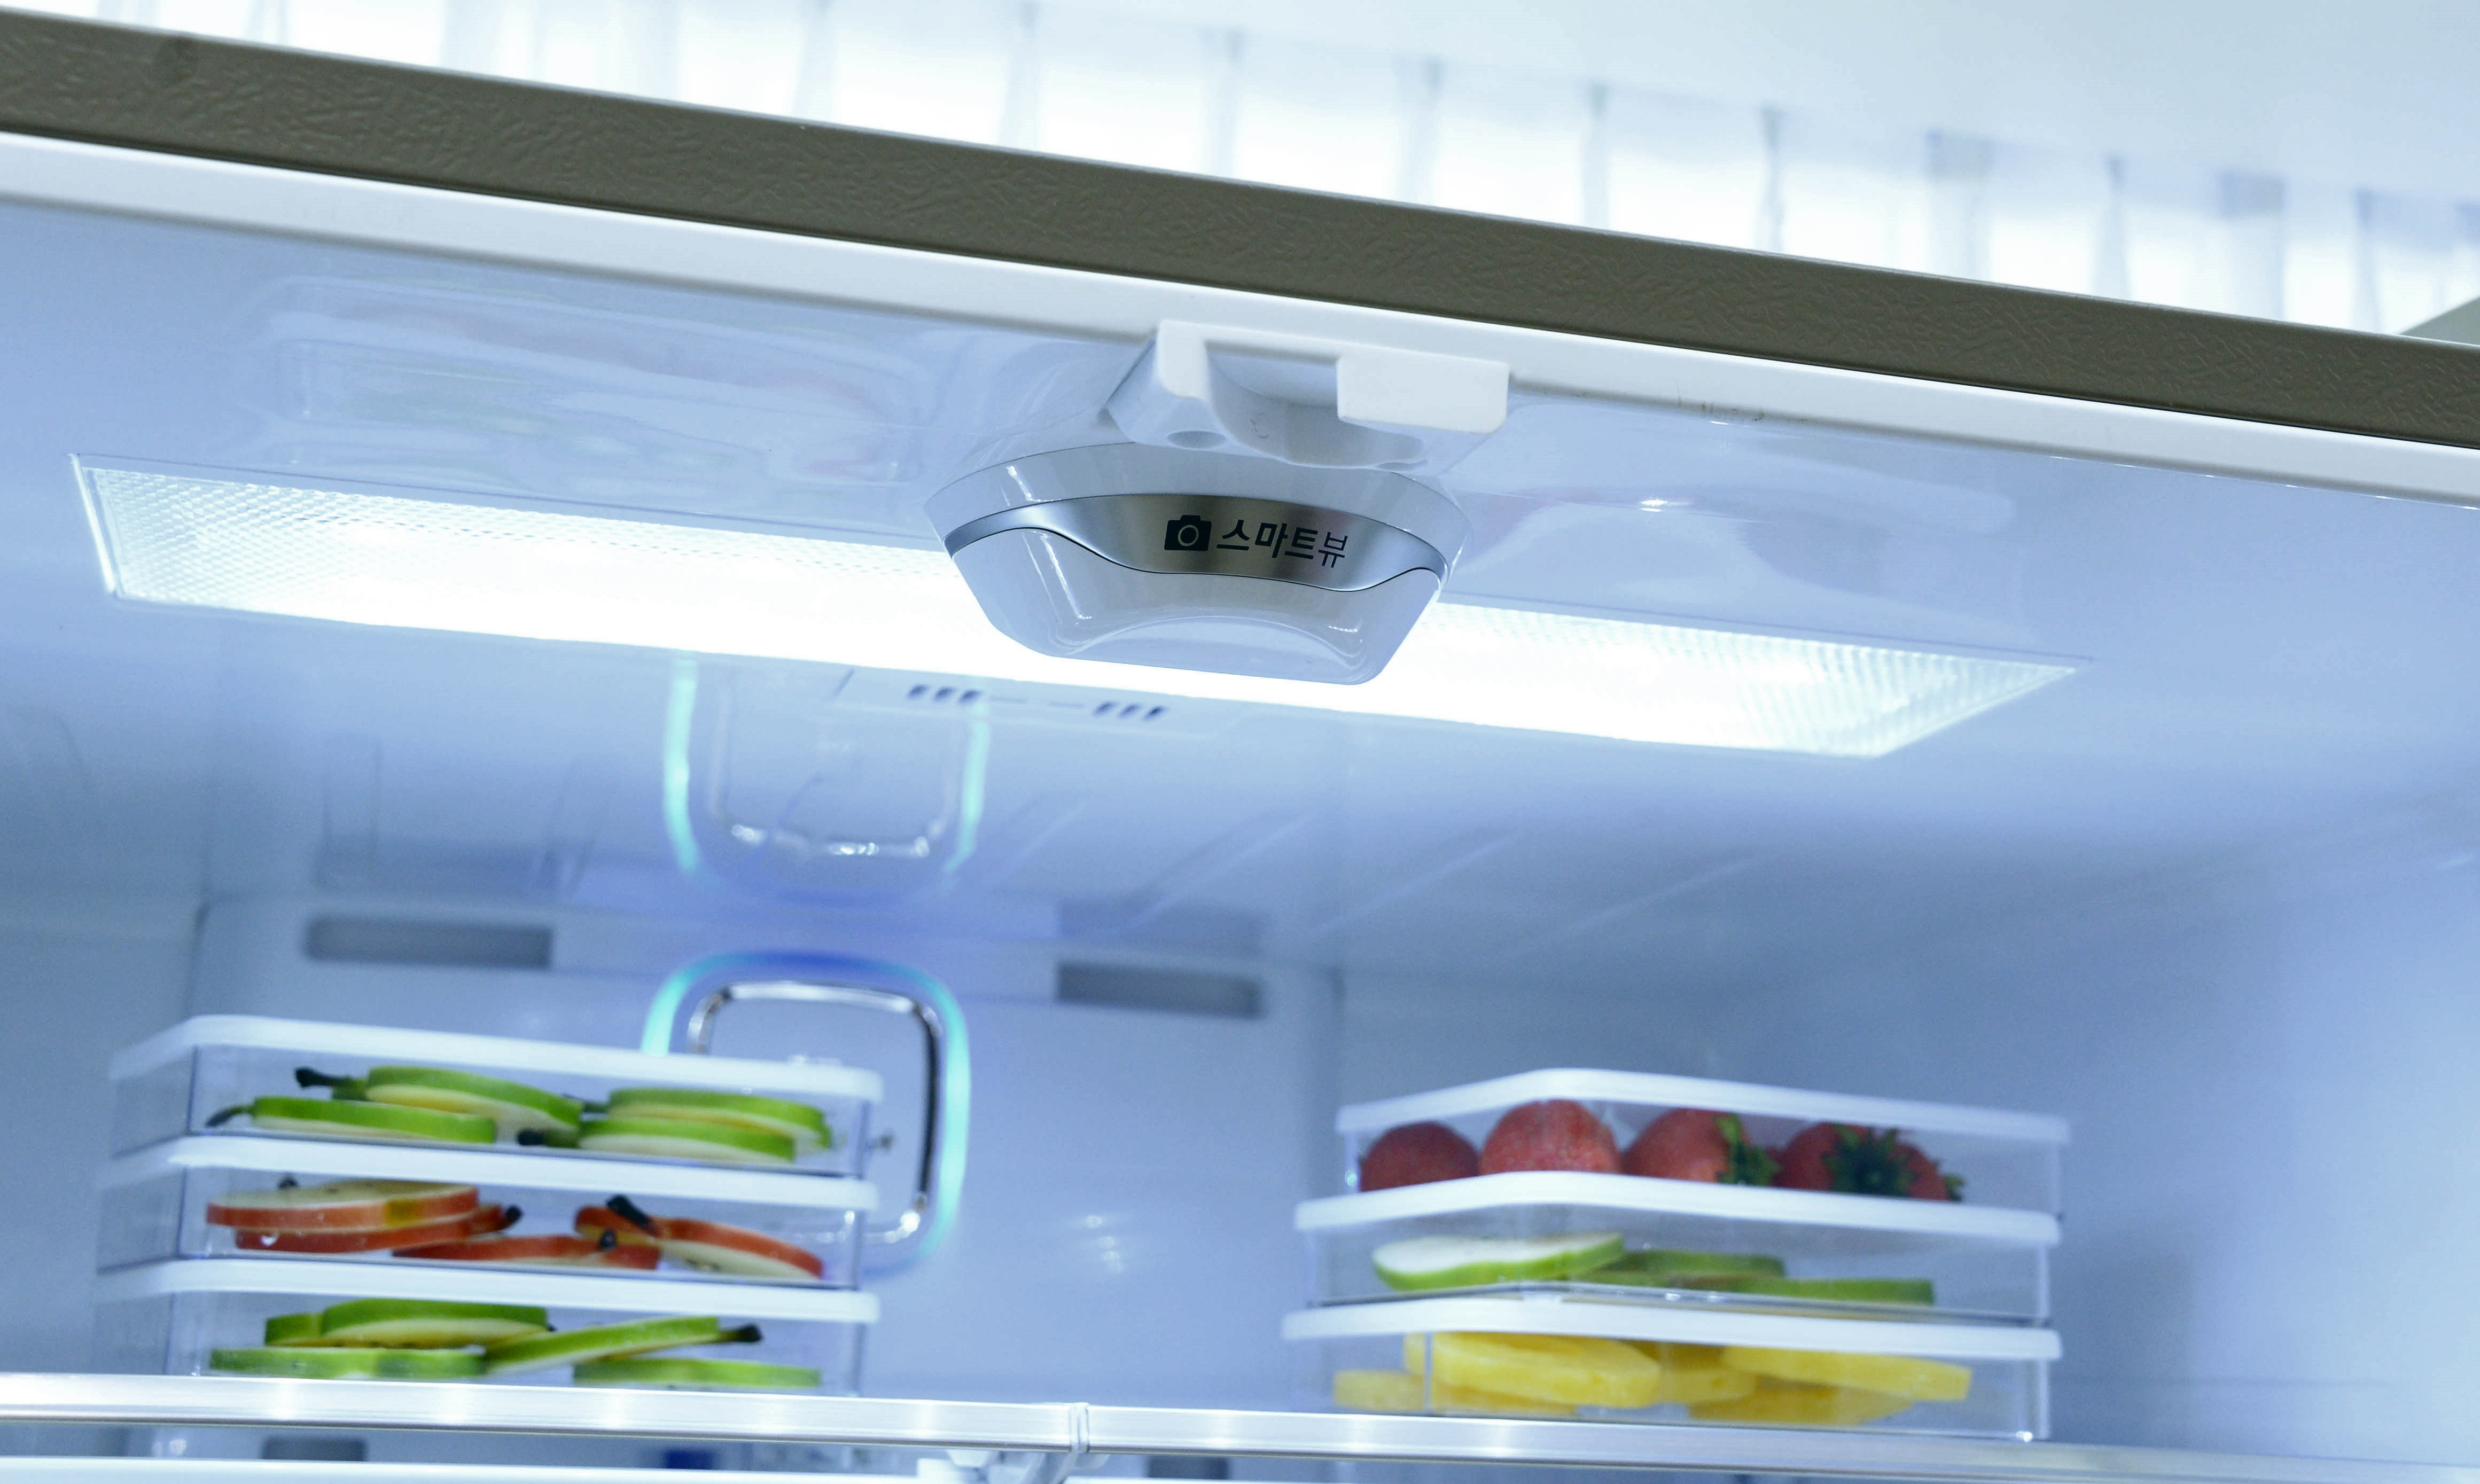 Close-up view of the Smart View camera located on the ceiling of the refrigerator's interior